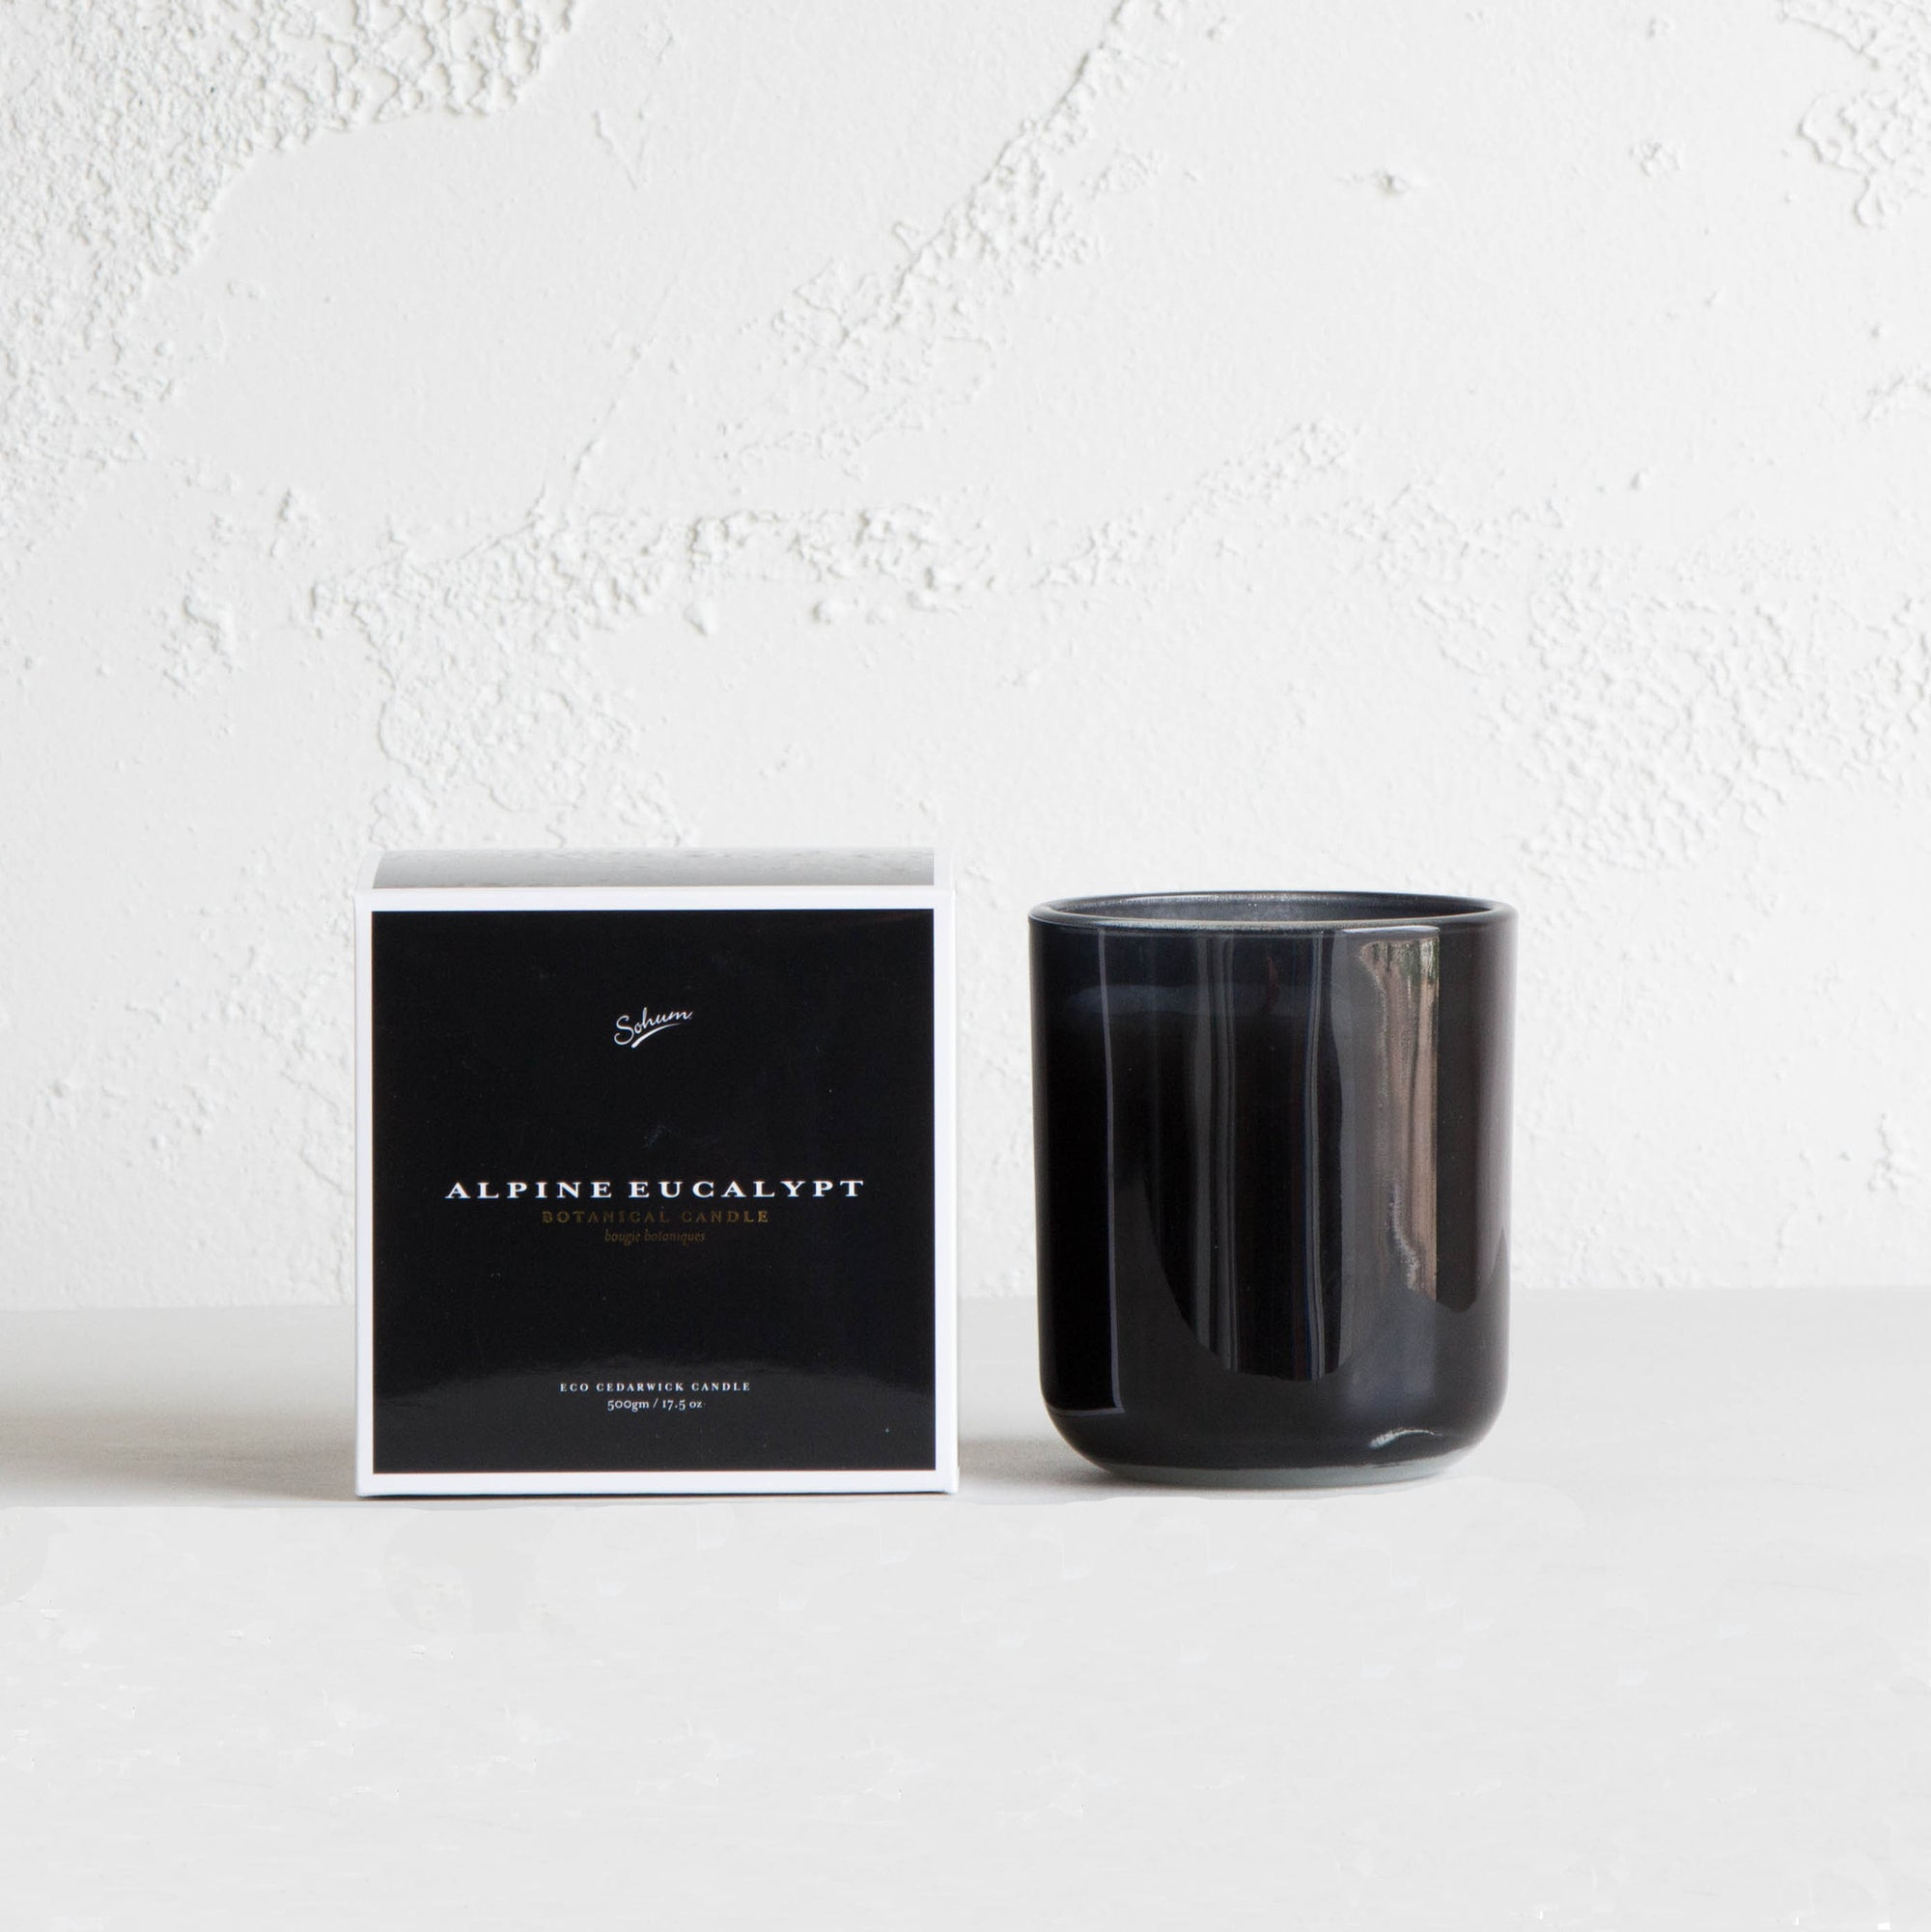 SOHUM ECO CEDARWICK CANDLE  |  SCENTED GLASS CANDLE  | ALPINE EUCALYPT